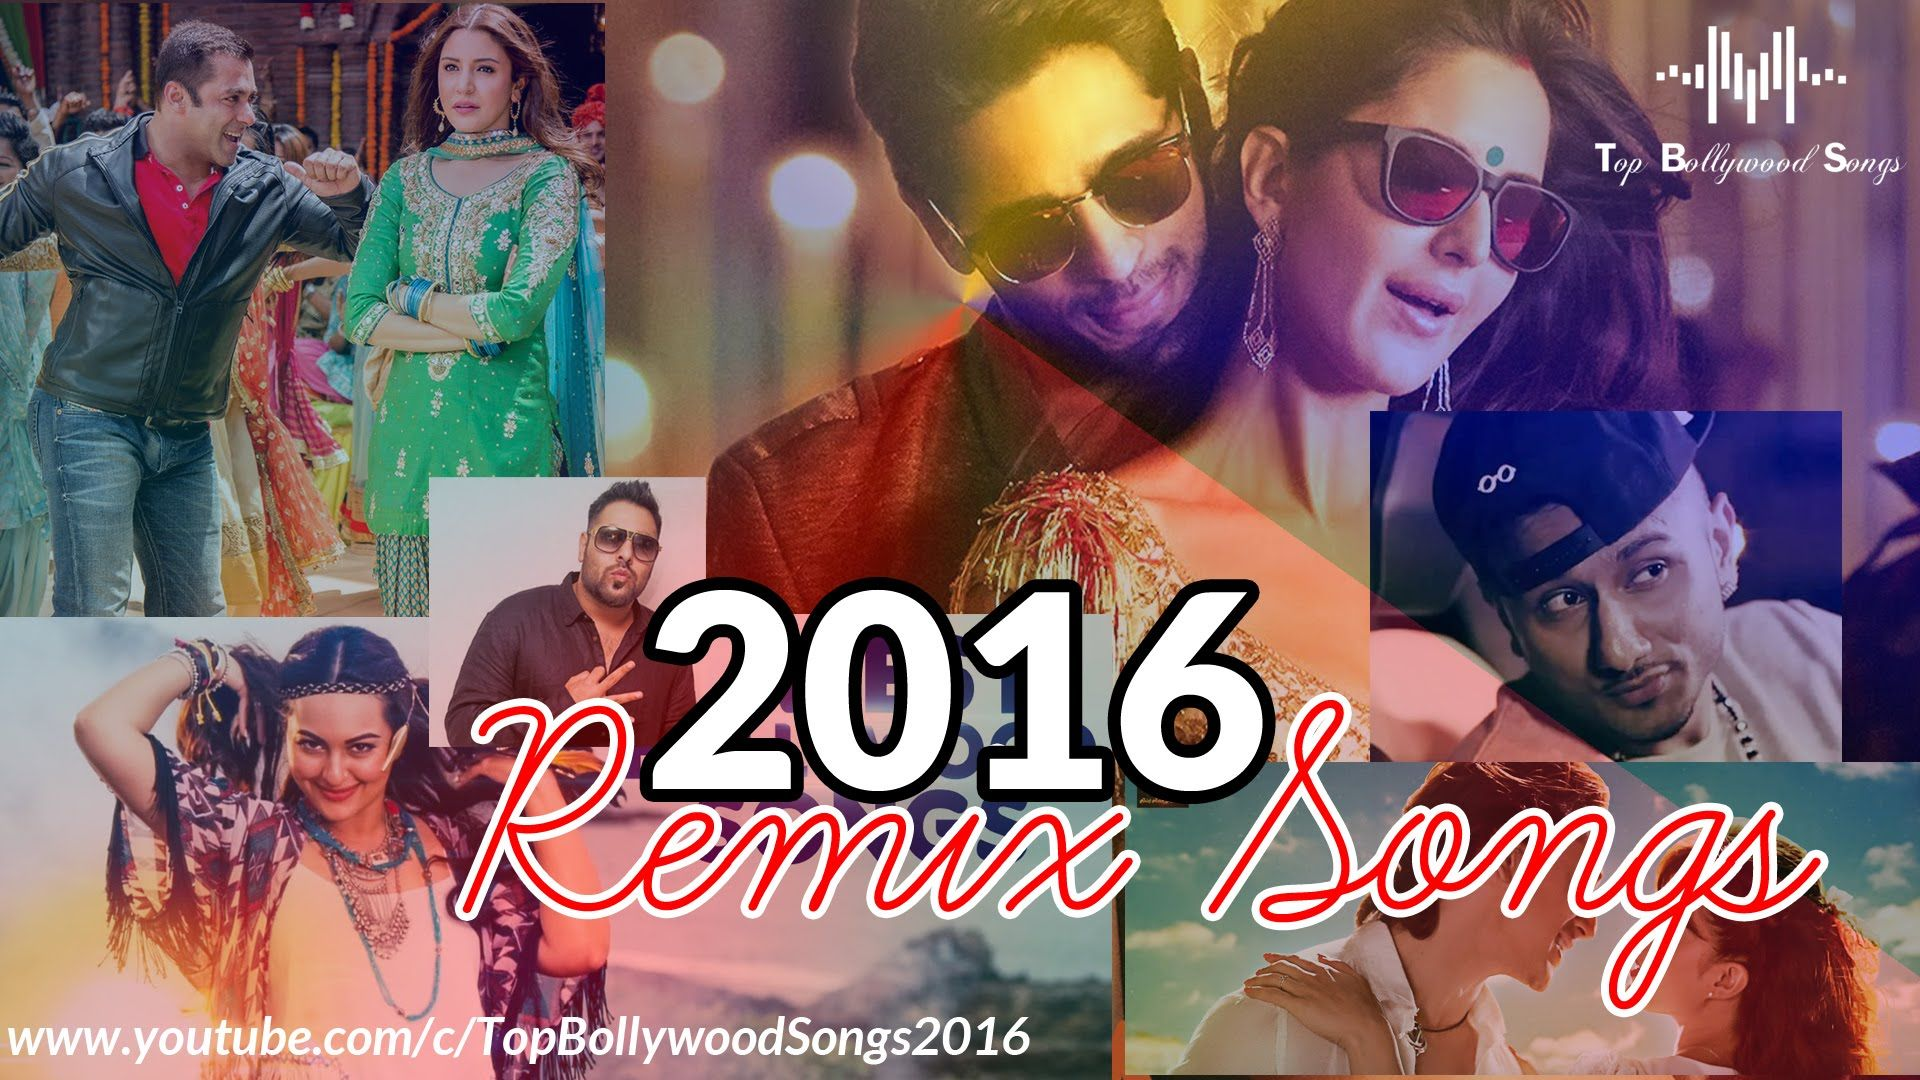 Best Remixes Of Popular Songs REMIX MASHUP DJ - Top best bollywood hindi dance party songs latest